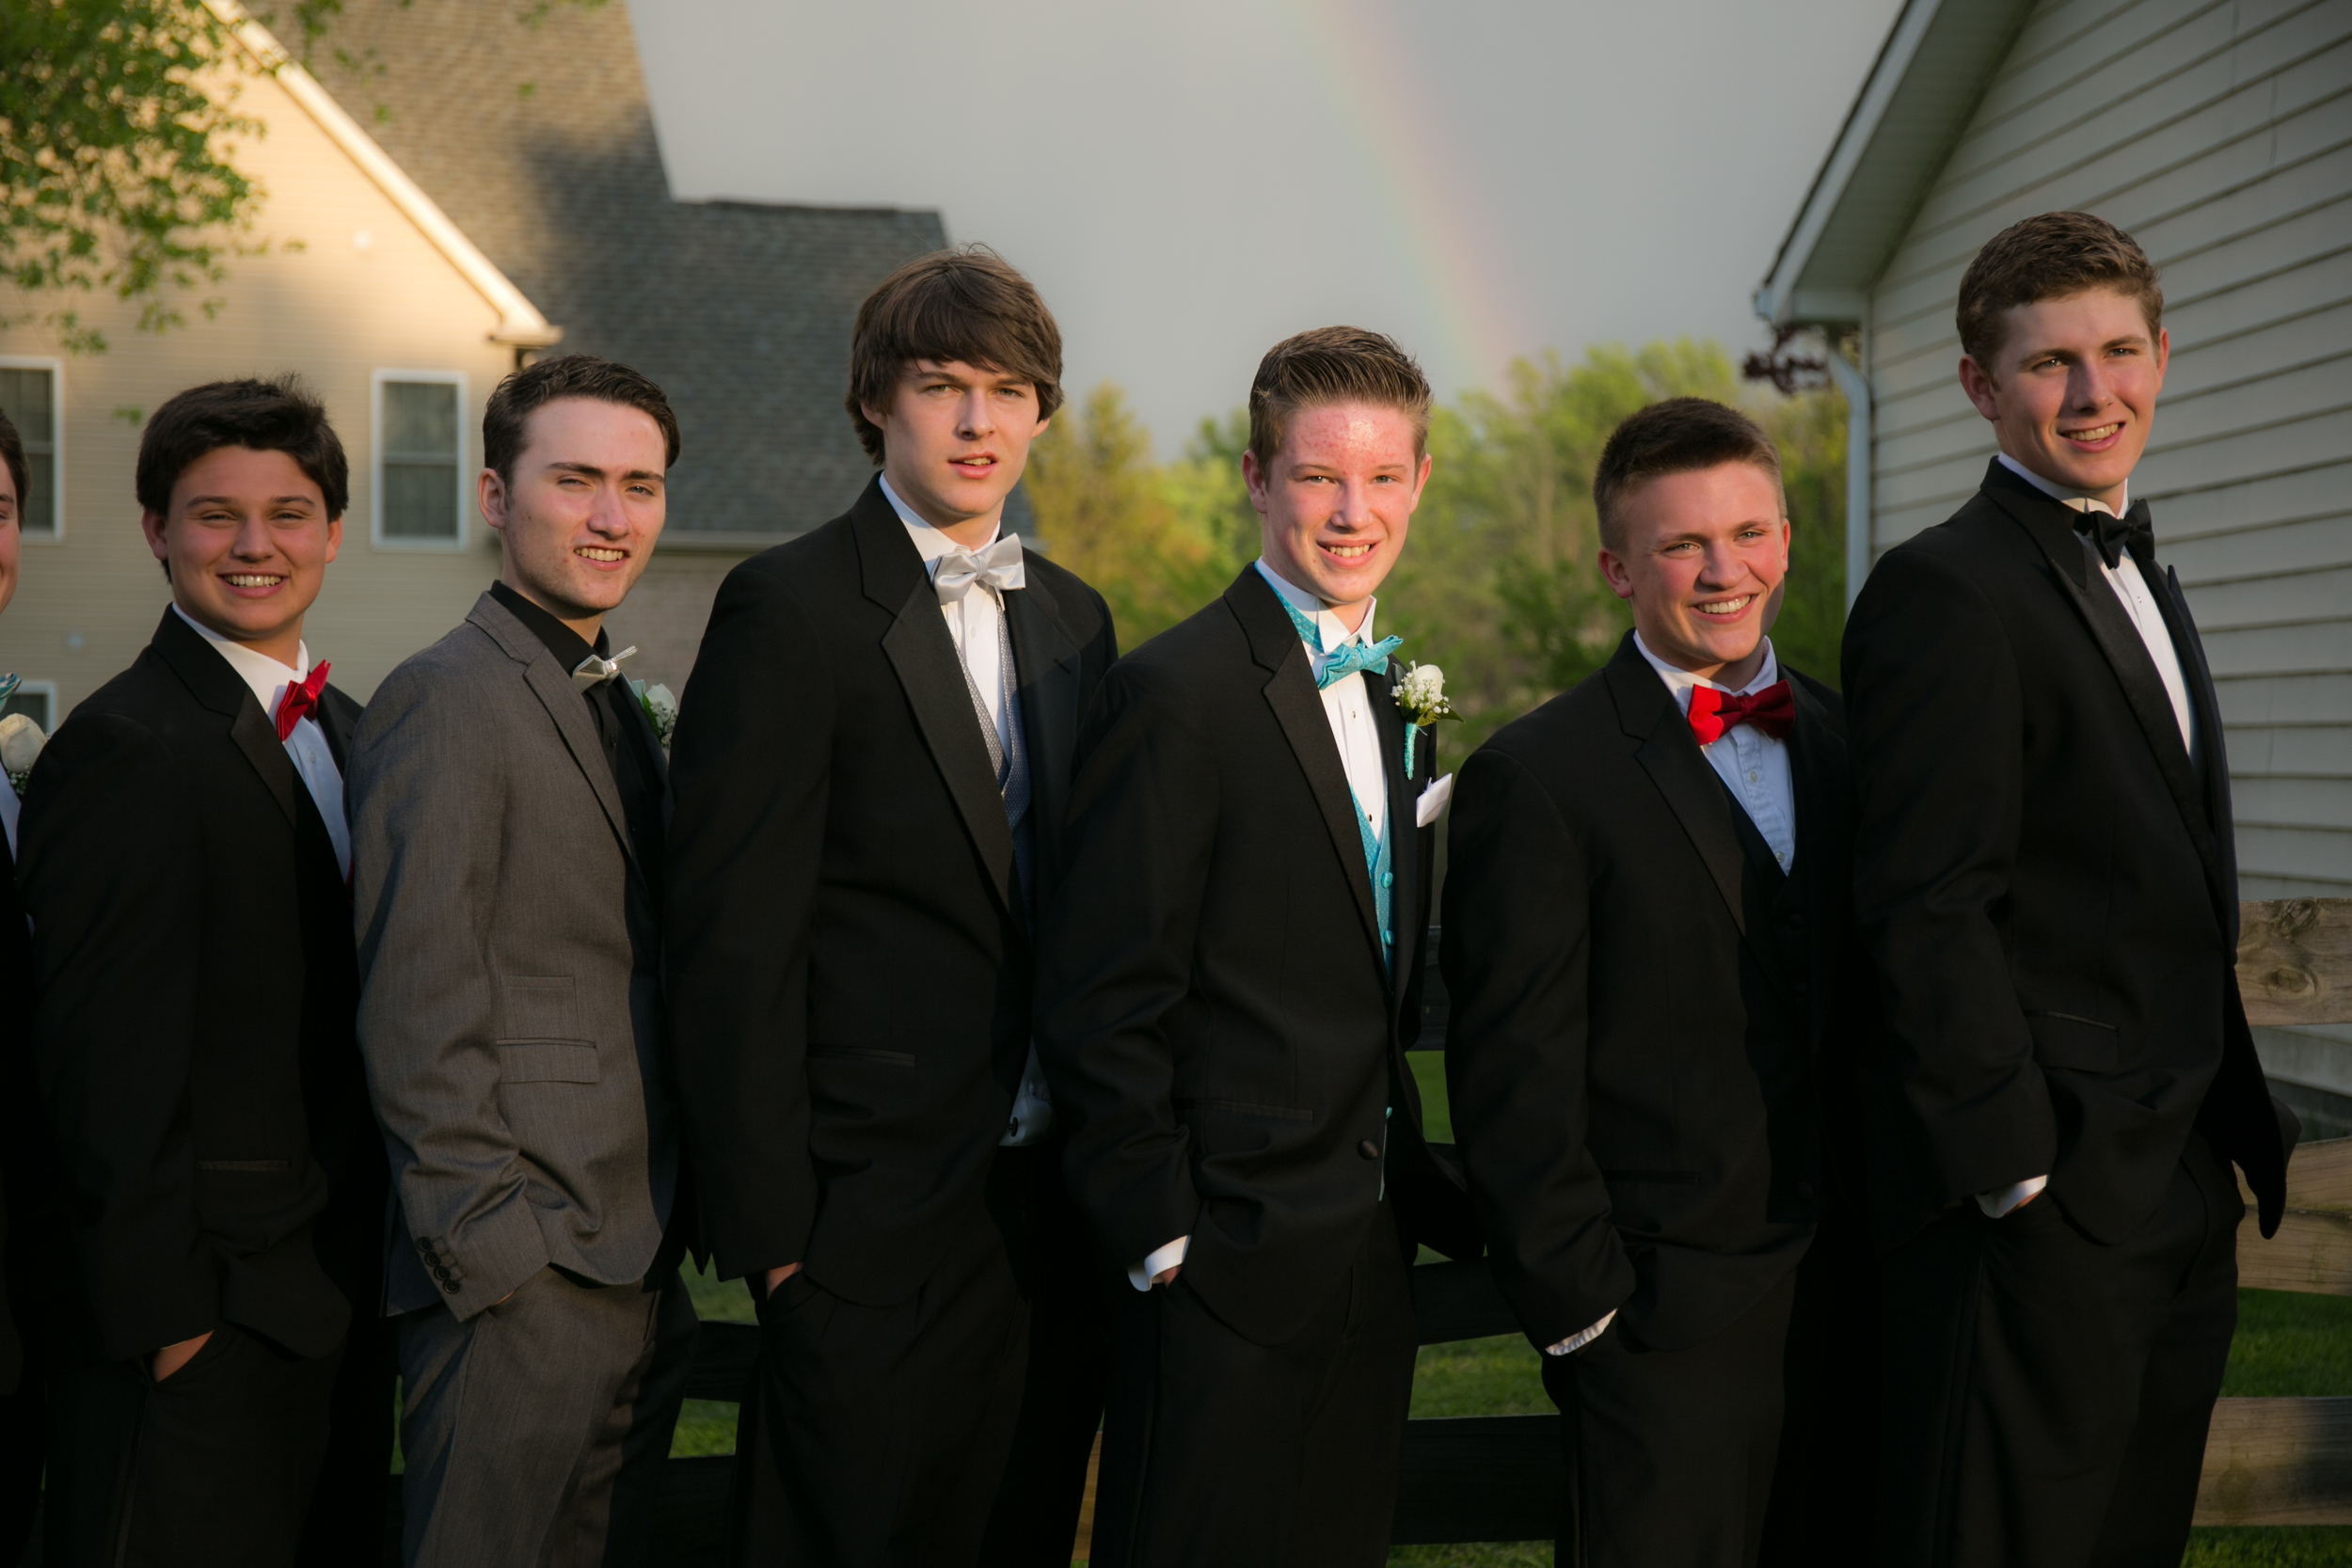 Mount-De-Sales-Pre-Prom-May-2014-60.jpg